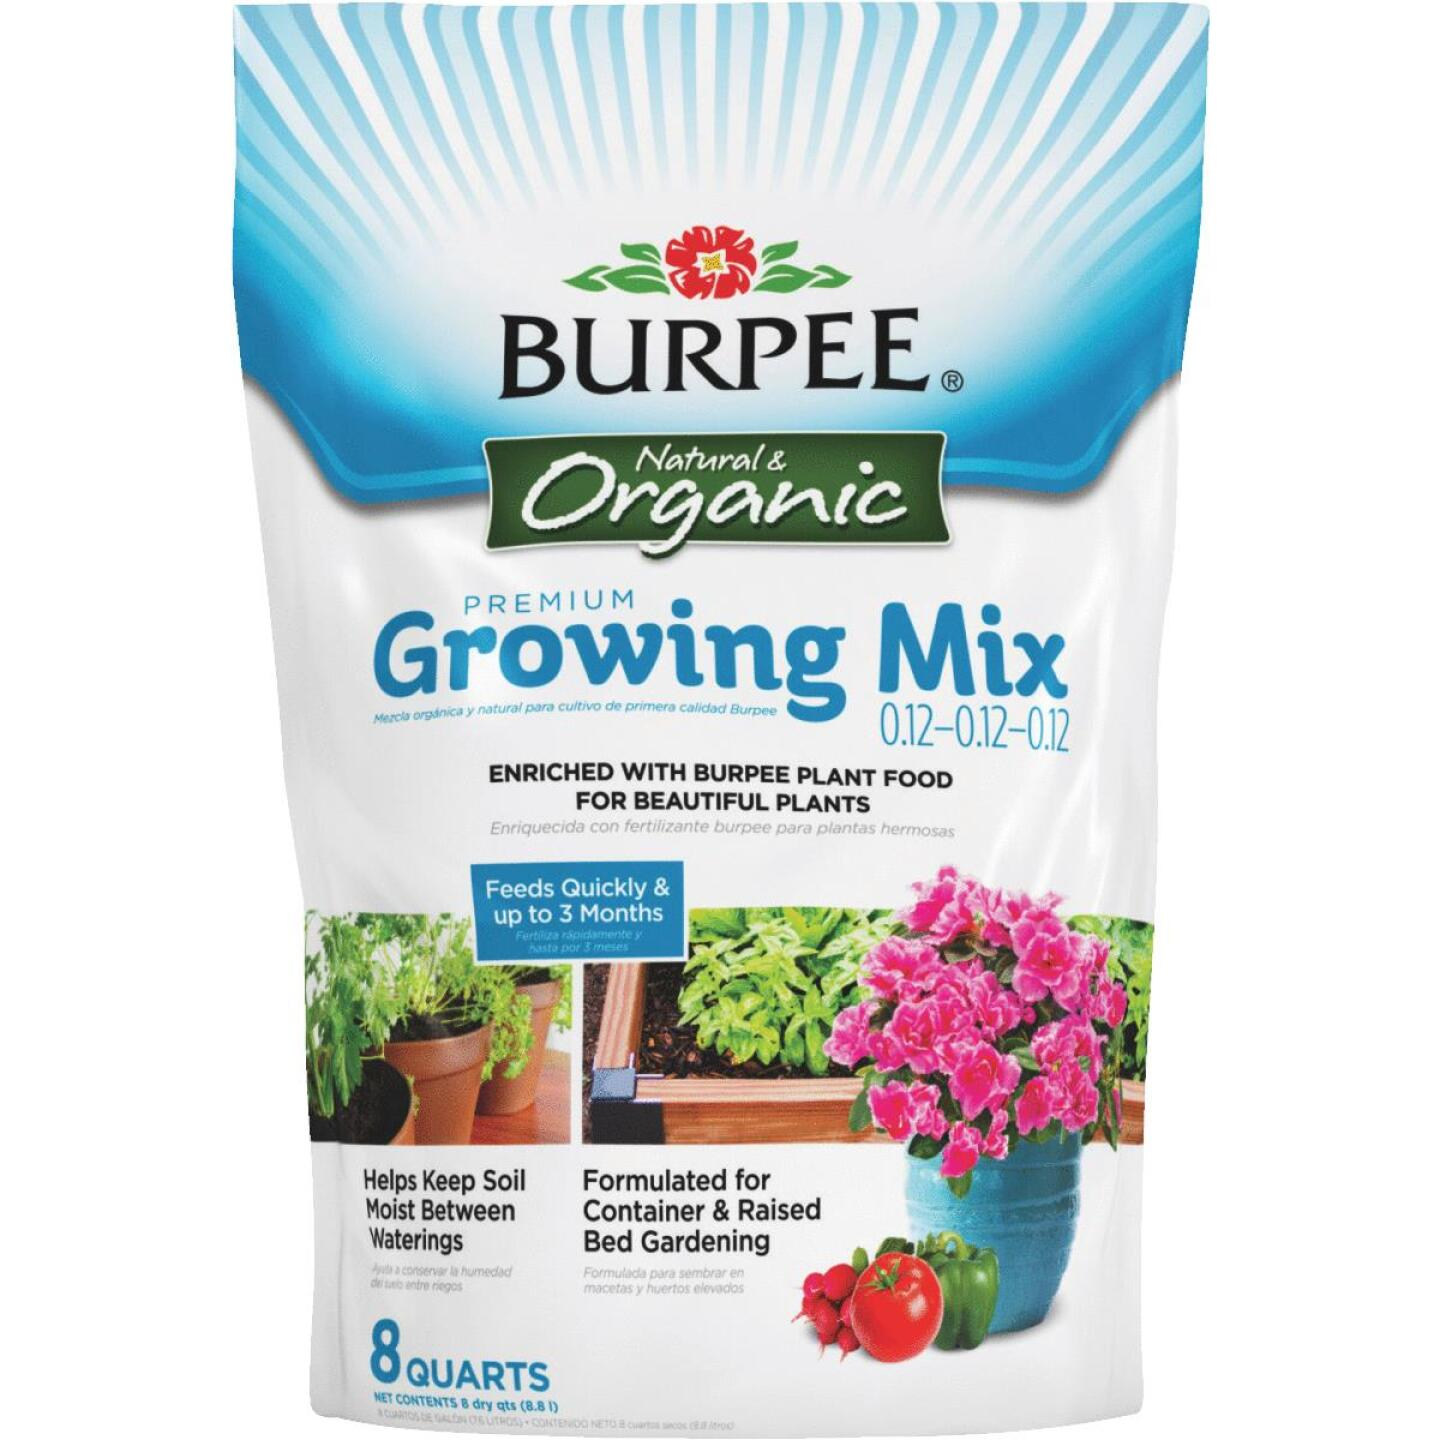 Burpee 8 Qt. All Purpose Container Organic Seed Starting Mix Image 1